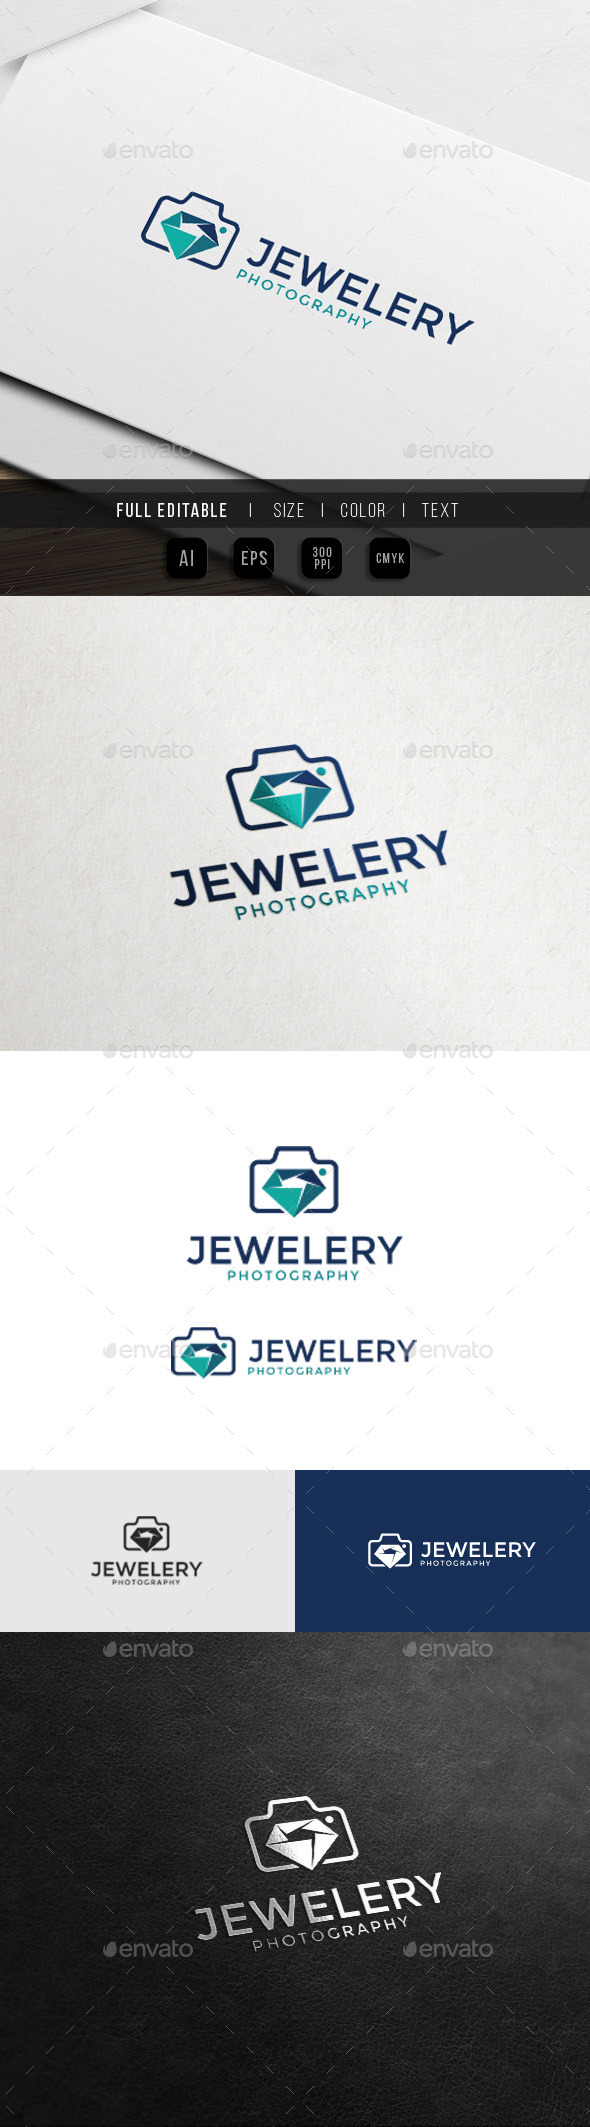 Event Premium Photography - Jewel Camera - Objects Logo Templates